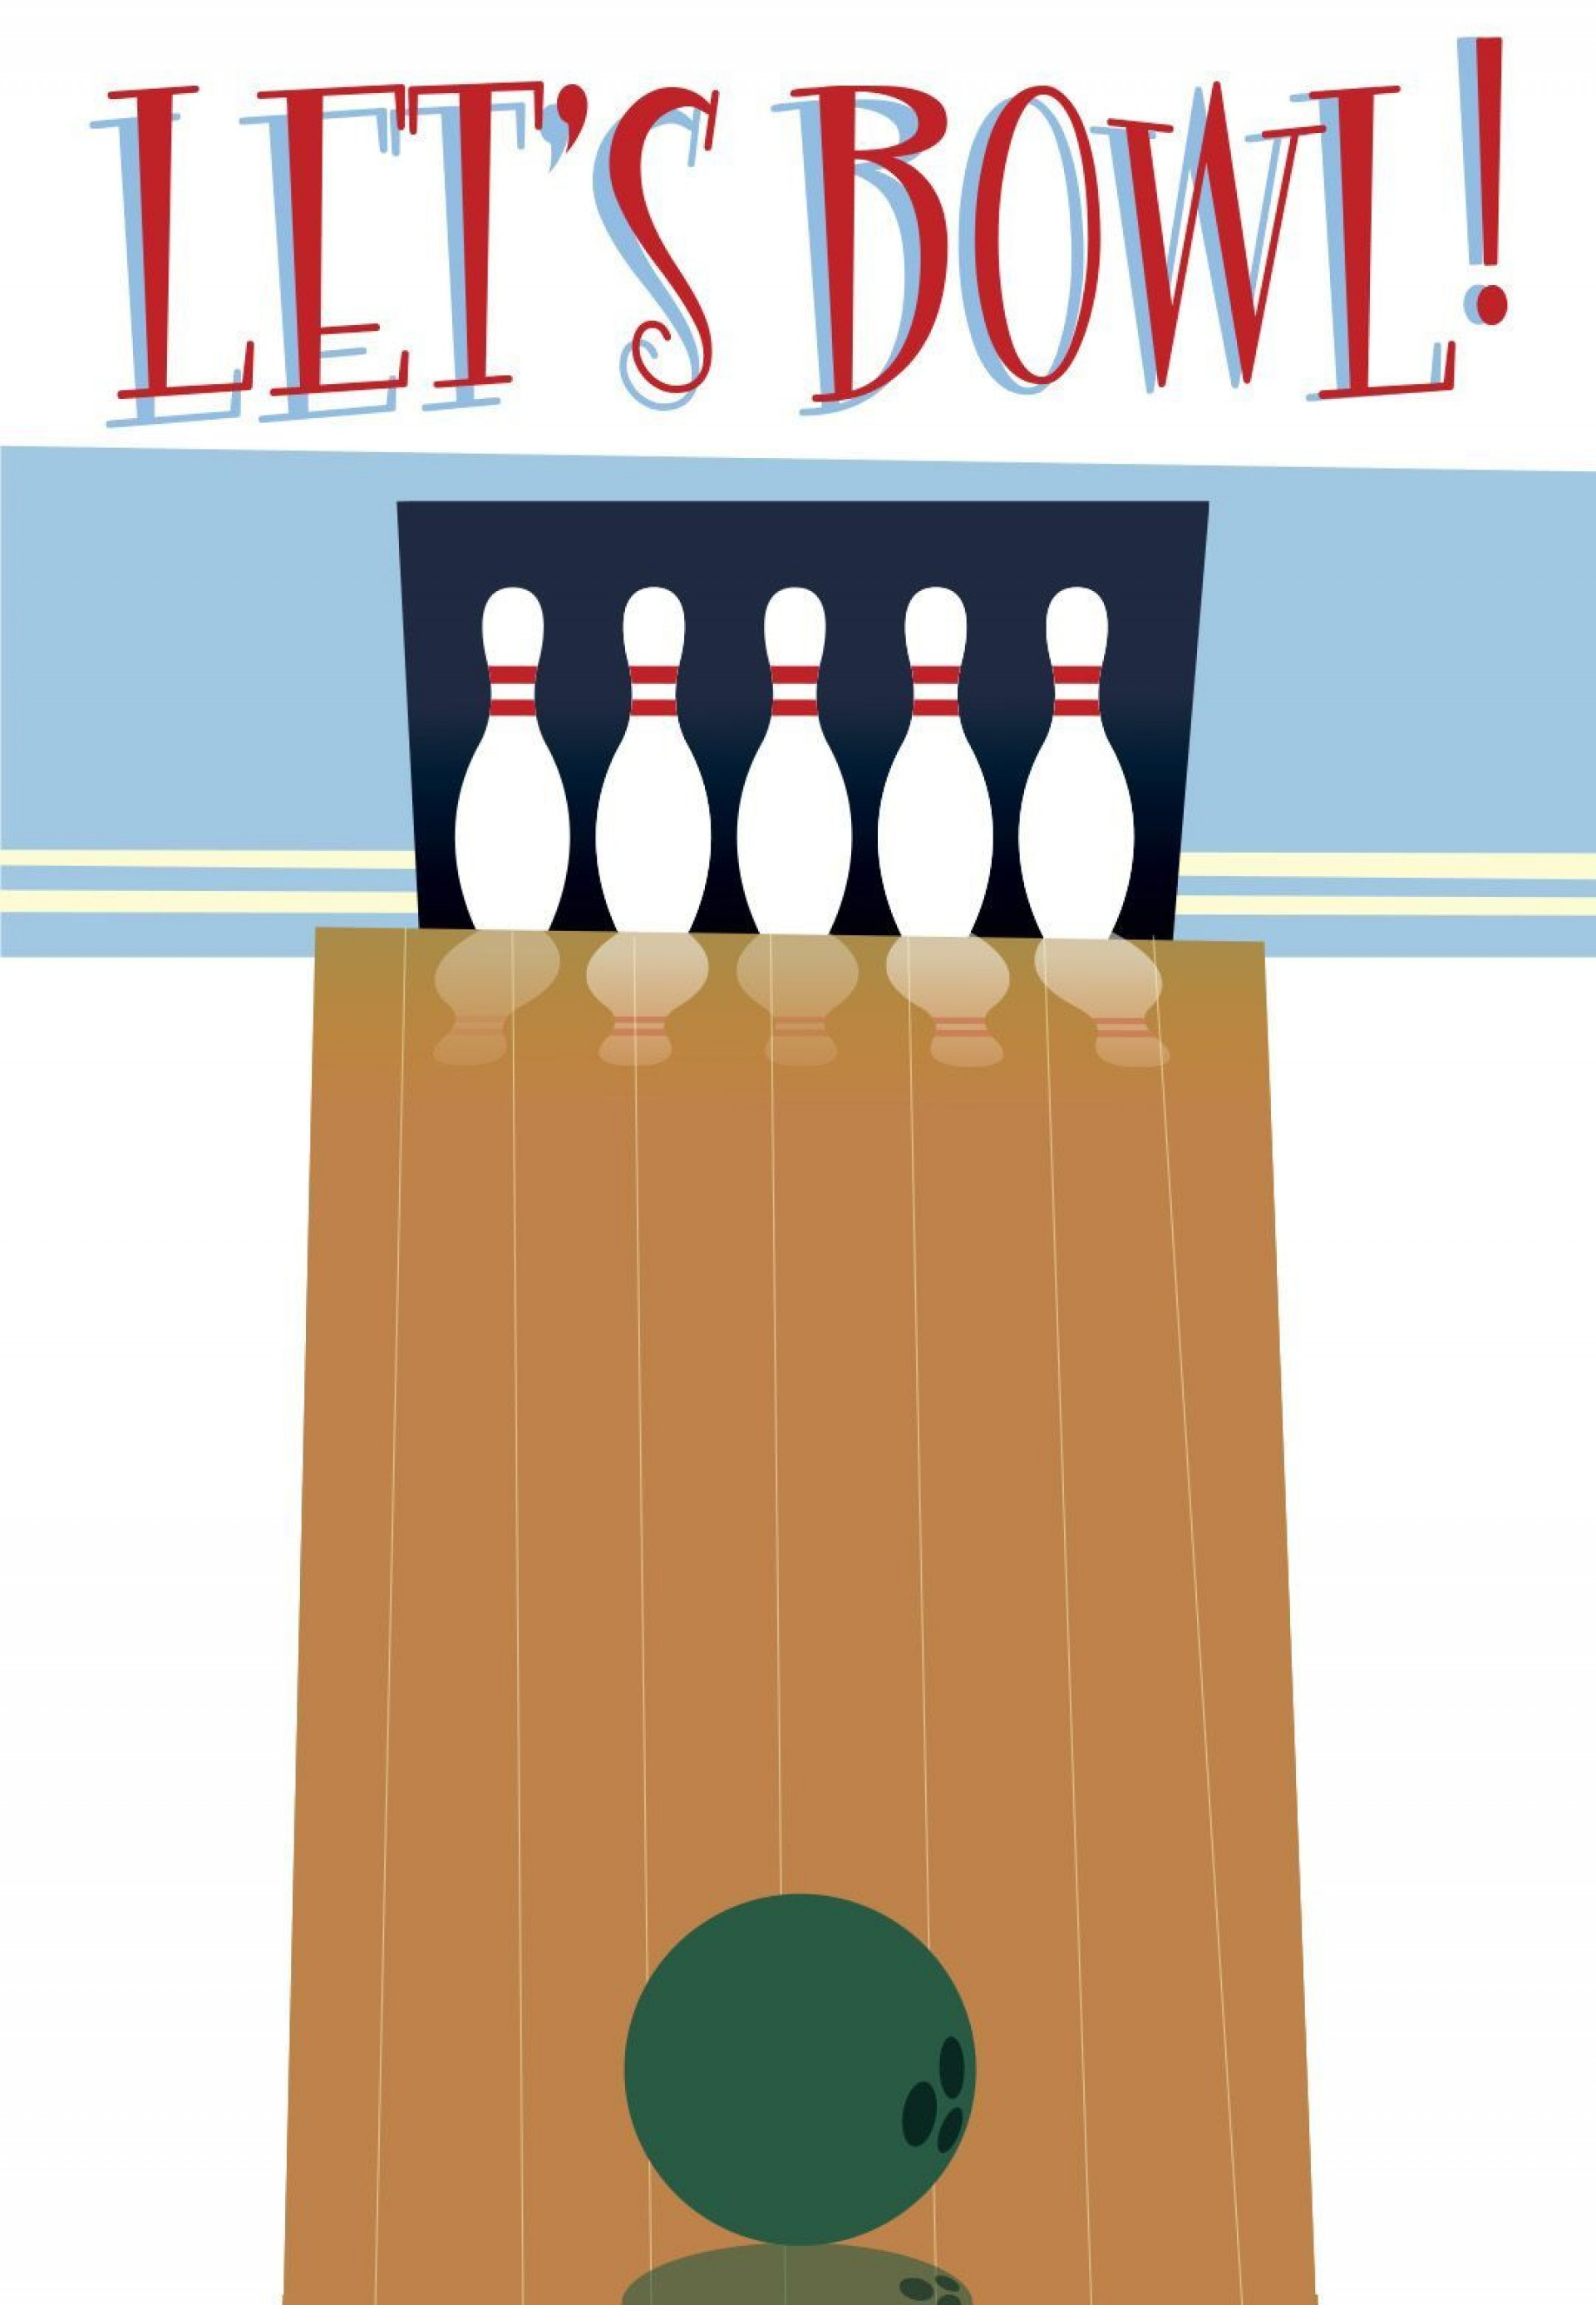 004 Magnificent Bowling Party Invite Printable Free Highest Quality  Birthday Invitation1920